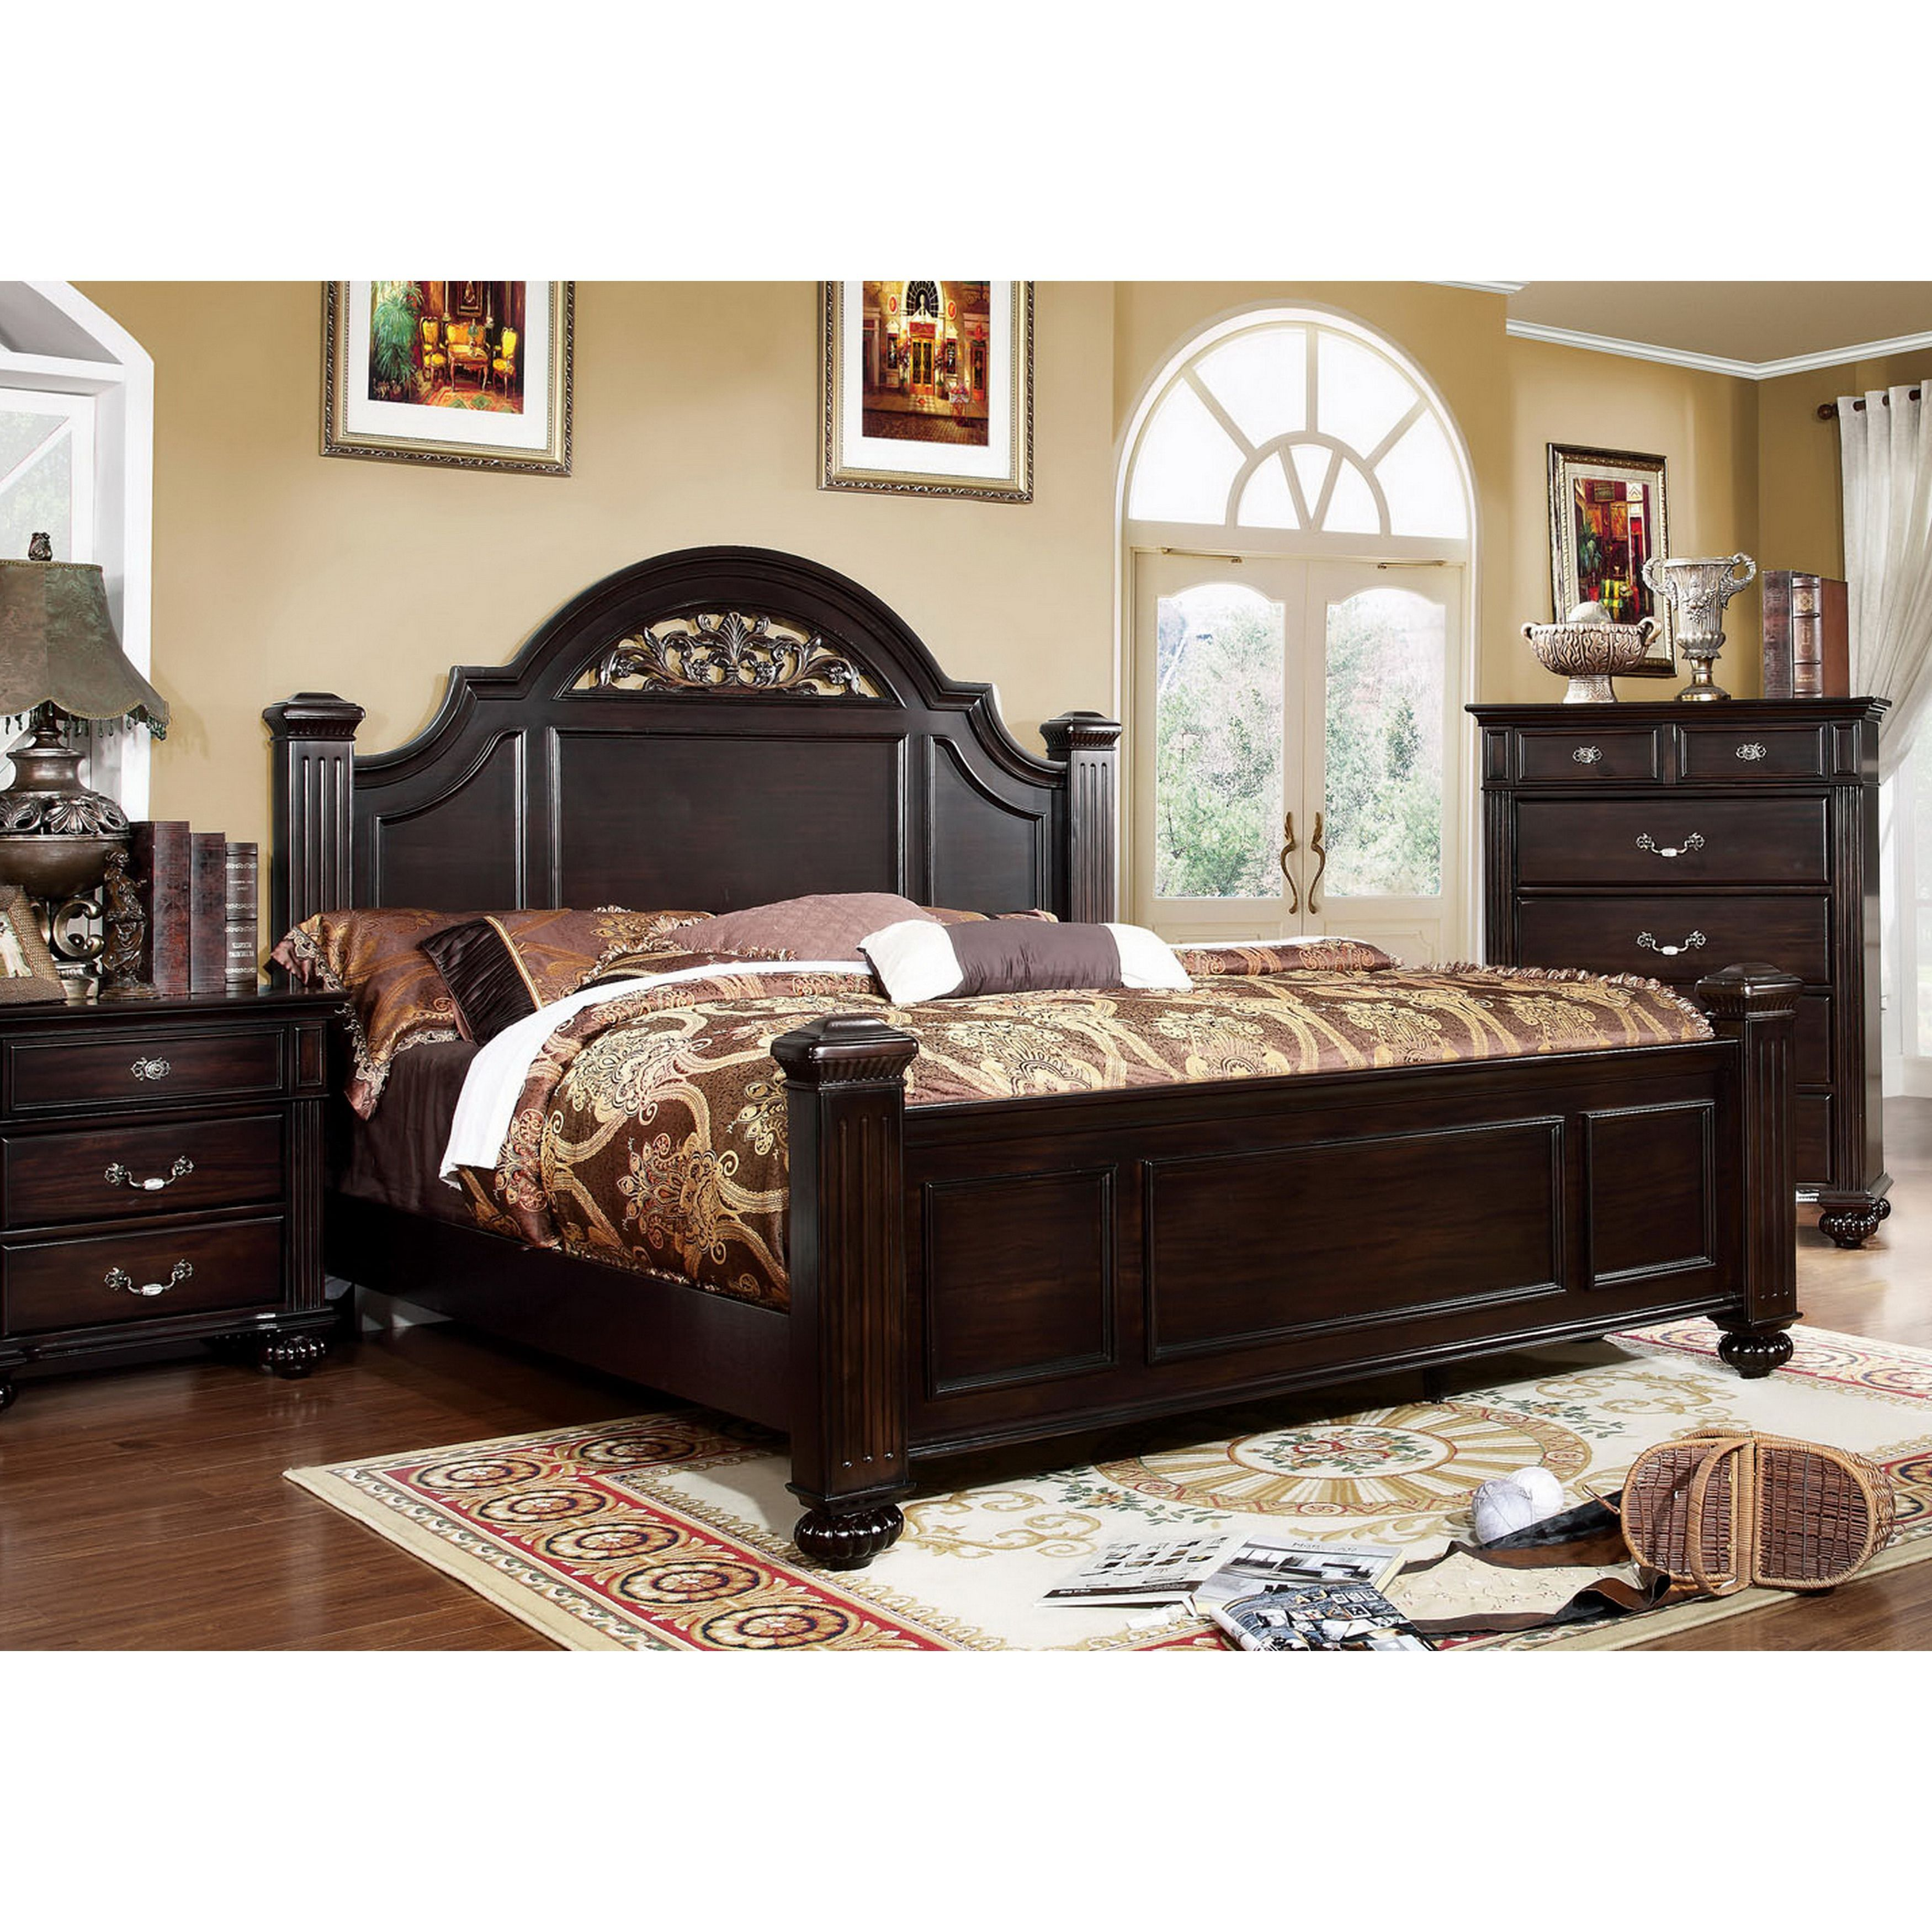 Furniture of America Vame Traditional Walnut Queen Solid